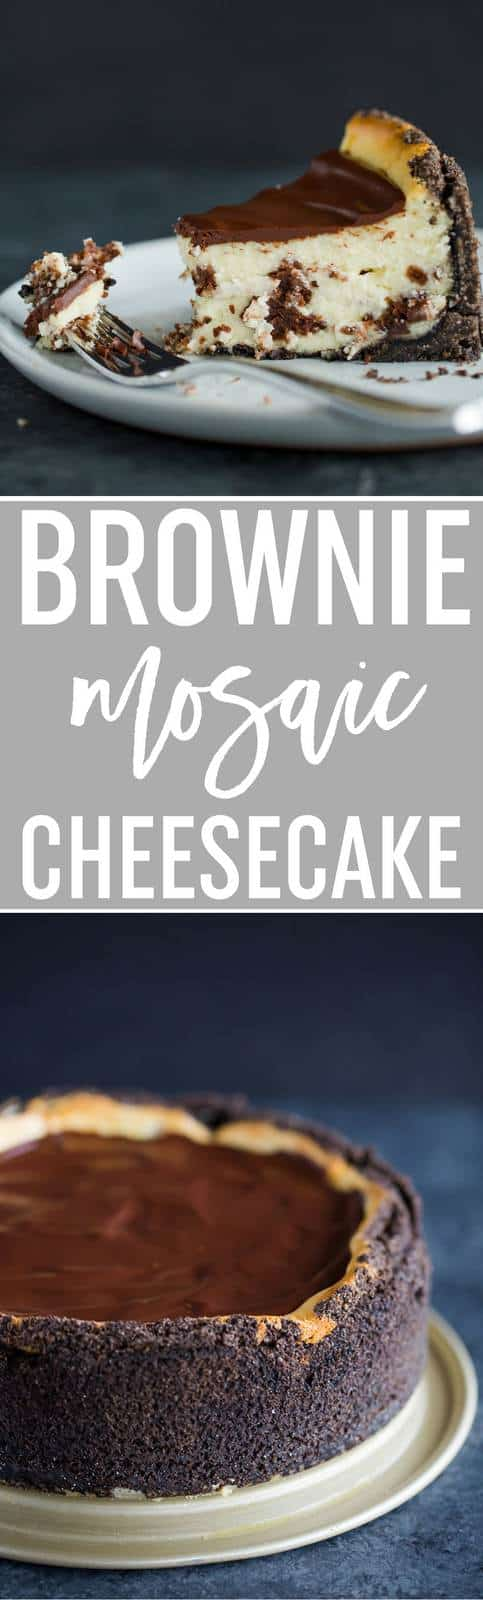 Brownie Mosaic Cheesecake :: A luscious cheesecake with cubes of brownies baked right inside, with an Oreo crumb crust and chocolate ganache topping. #recipe #cheesecake #brownies #baking #dessert